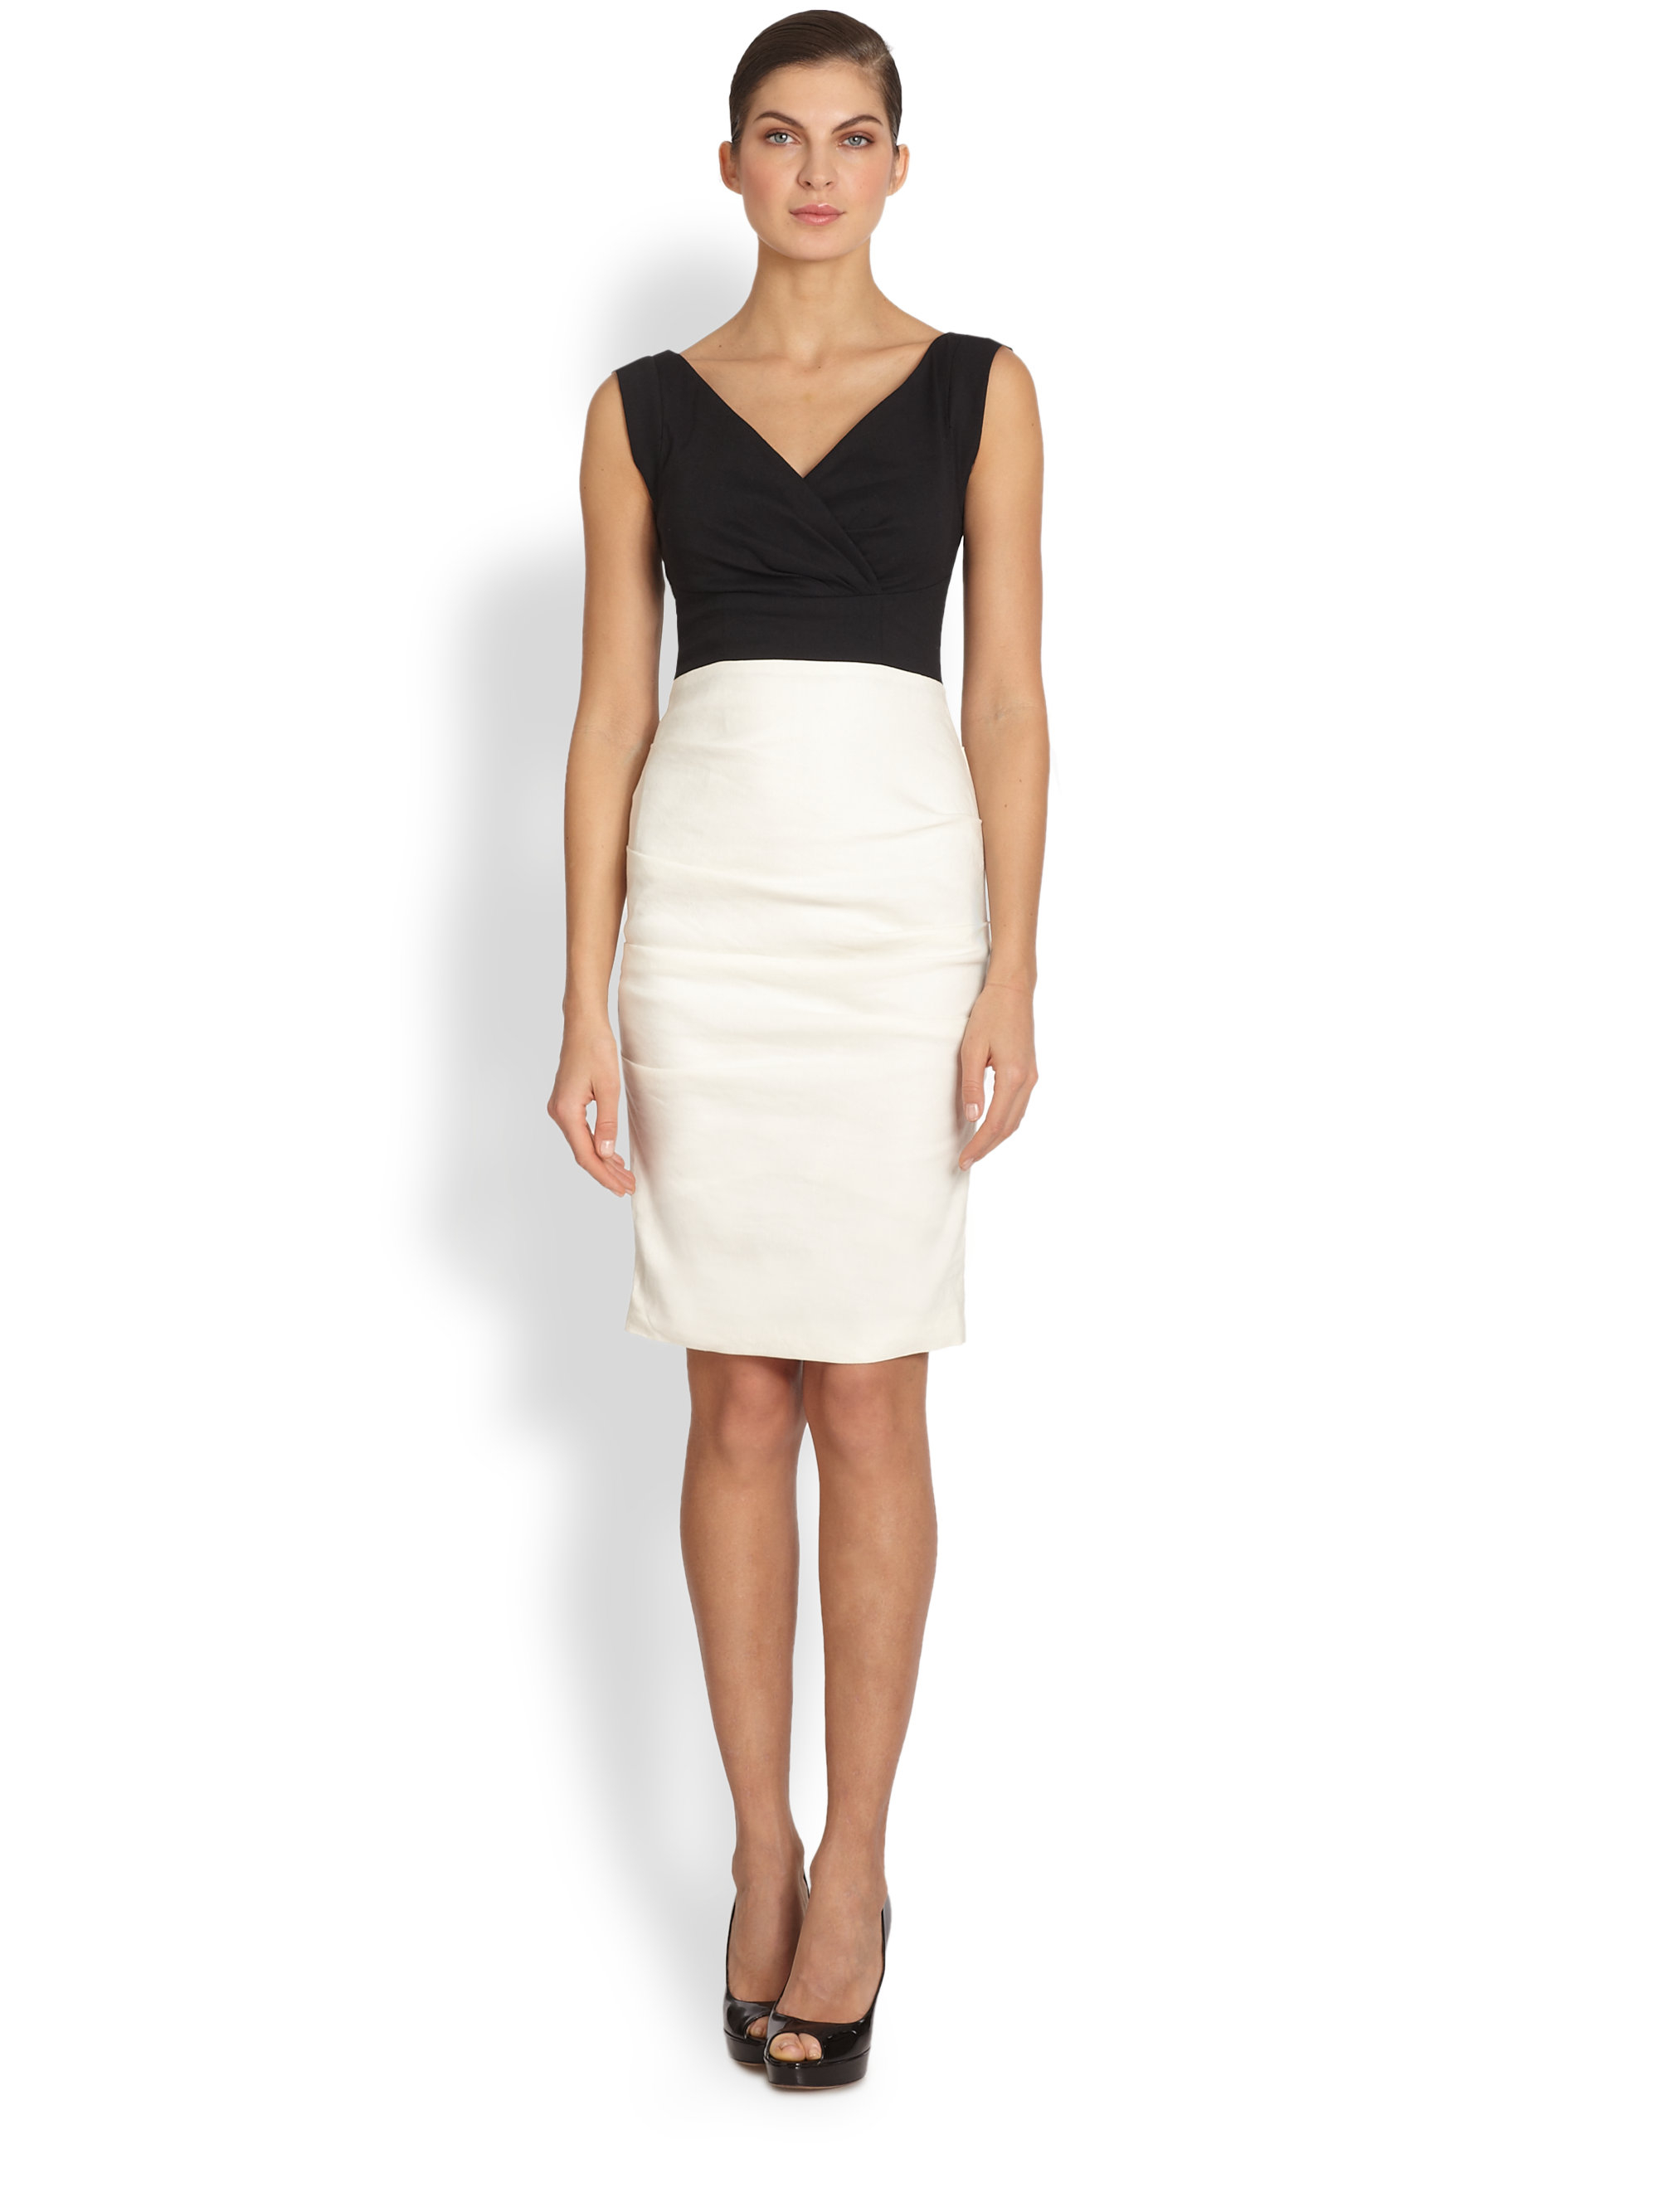 Nicole miller Andrea Two-tone Cocktail Dress in Black | Lyst